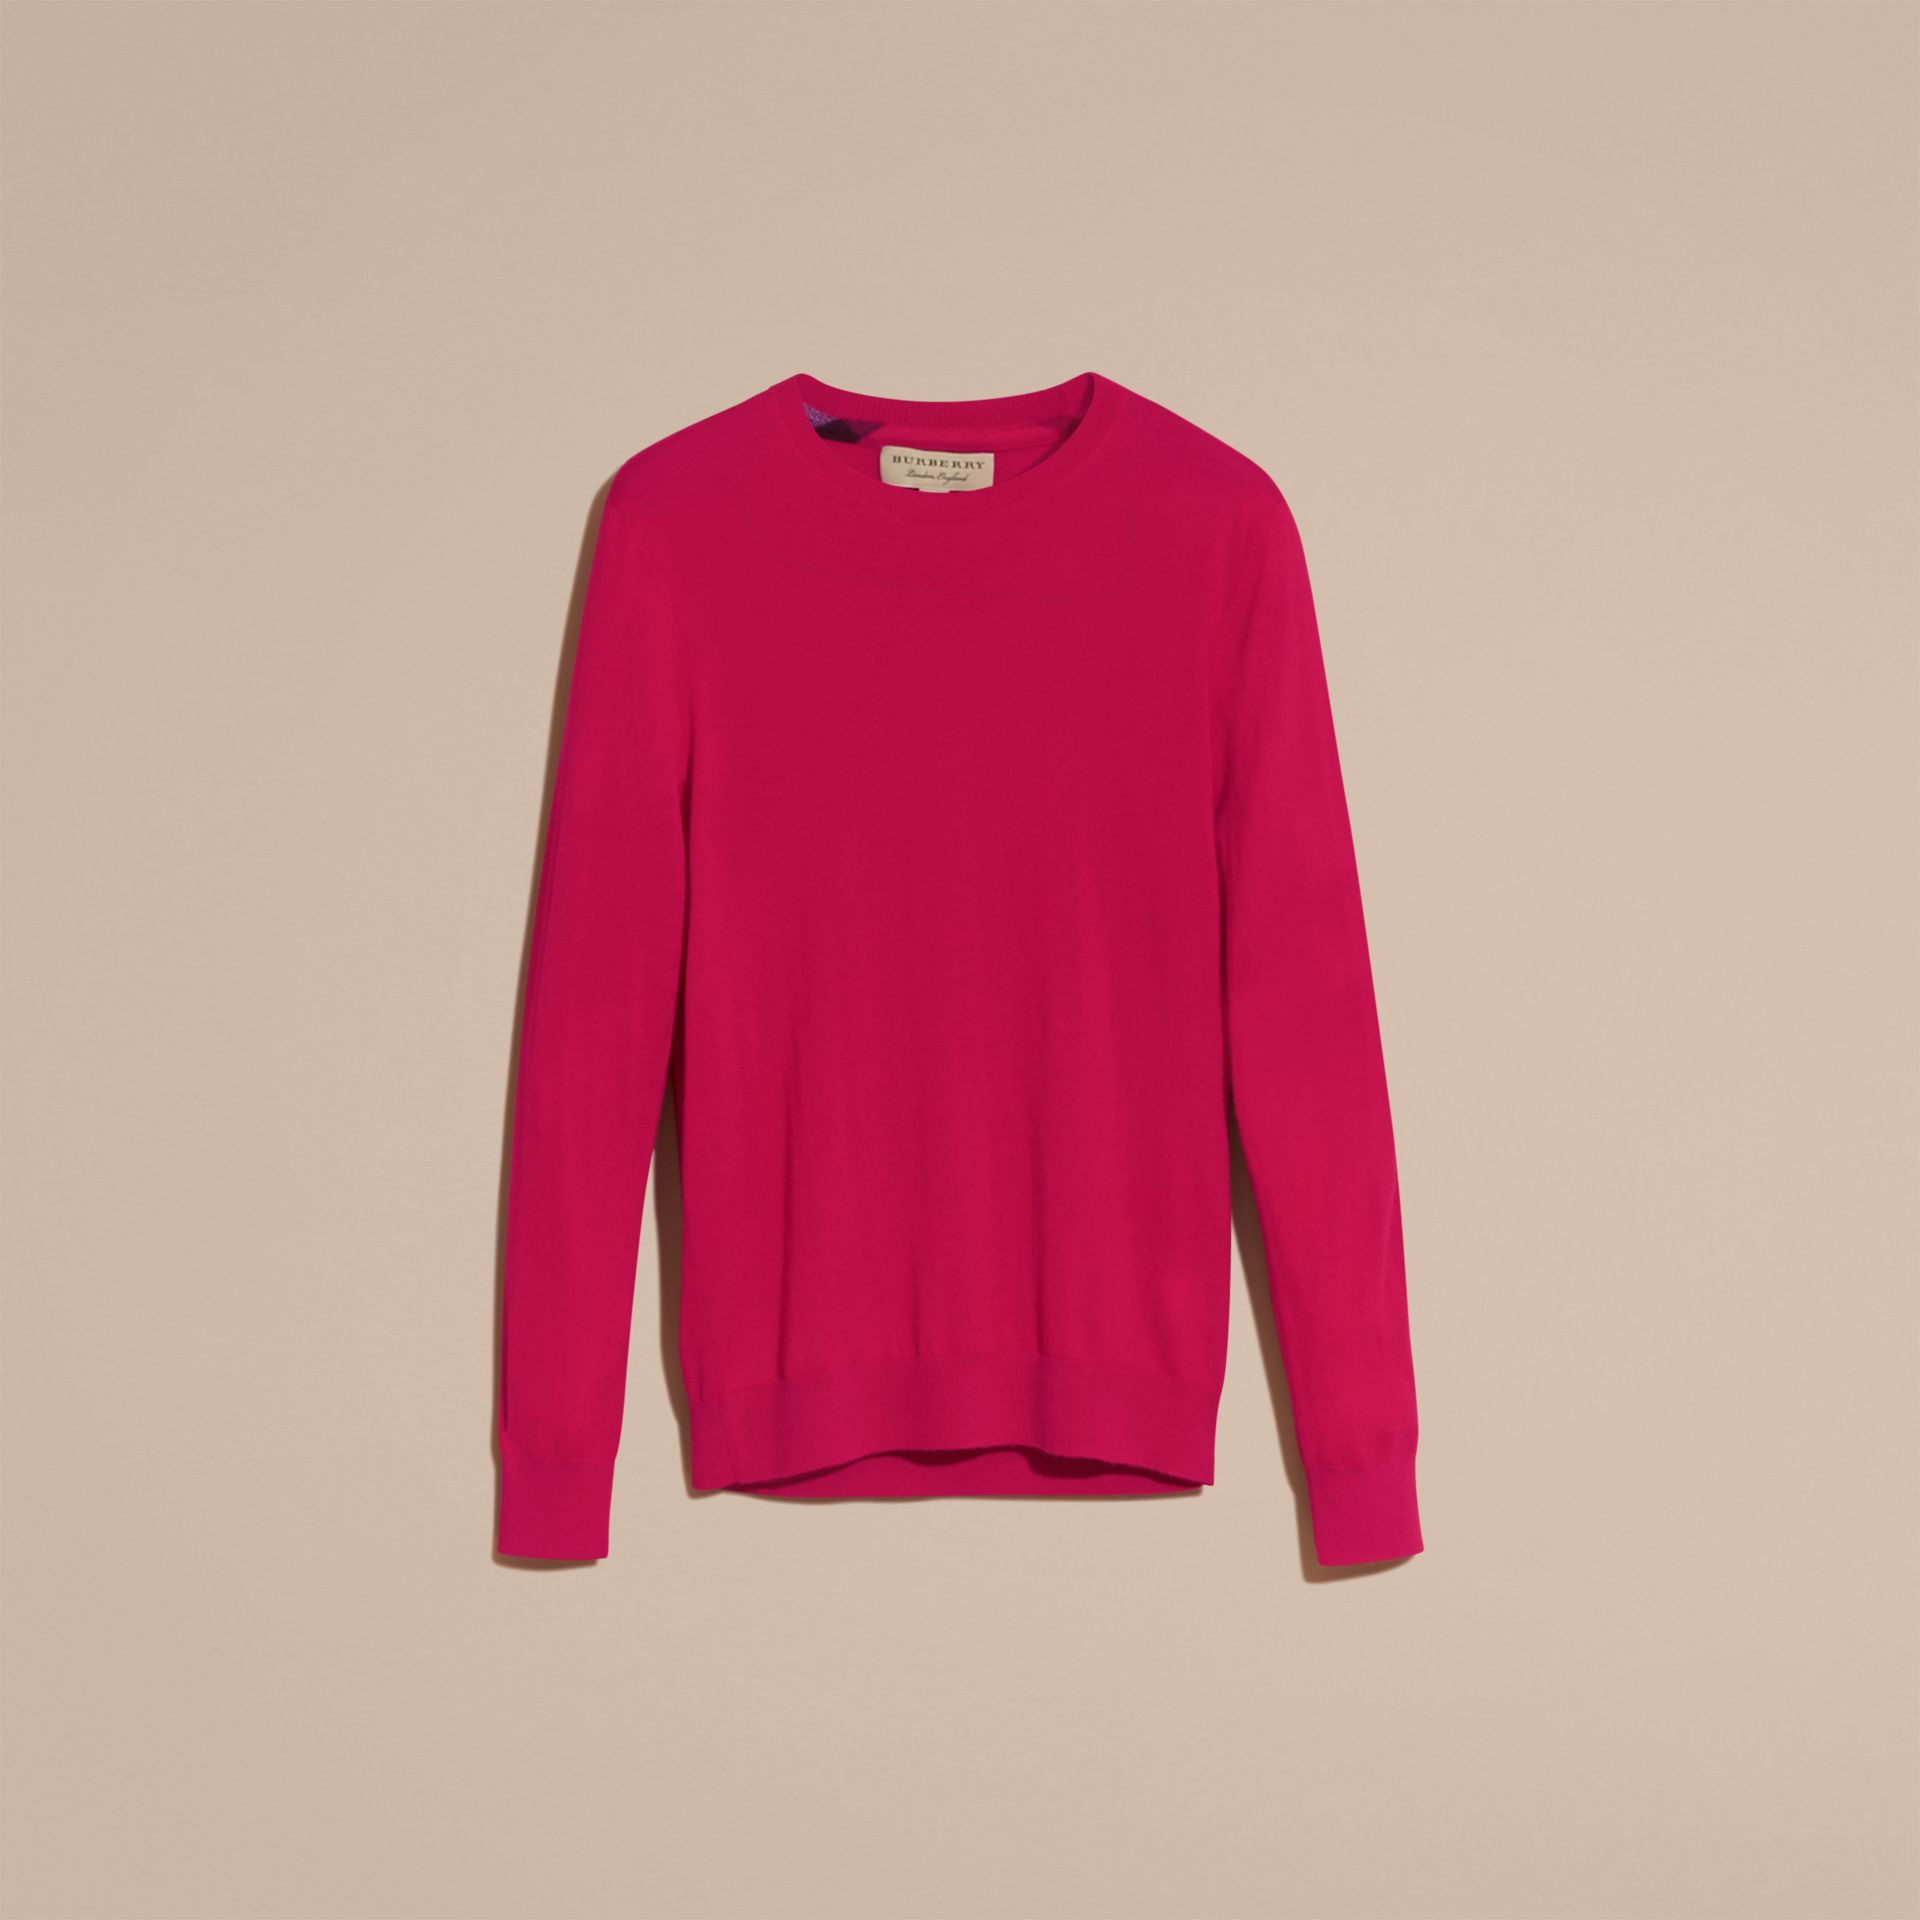 Bright pink Lightweight Crew Neck Cashmere Sweater with Check Trim Bright Pink - gallery image 4